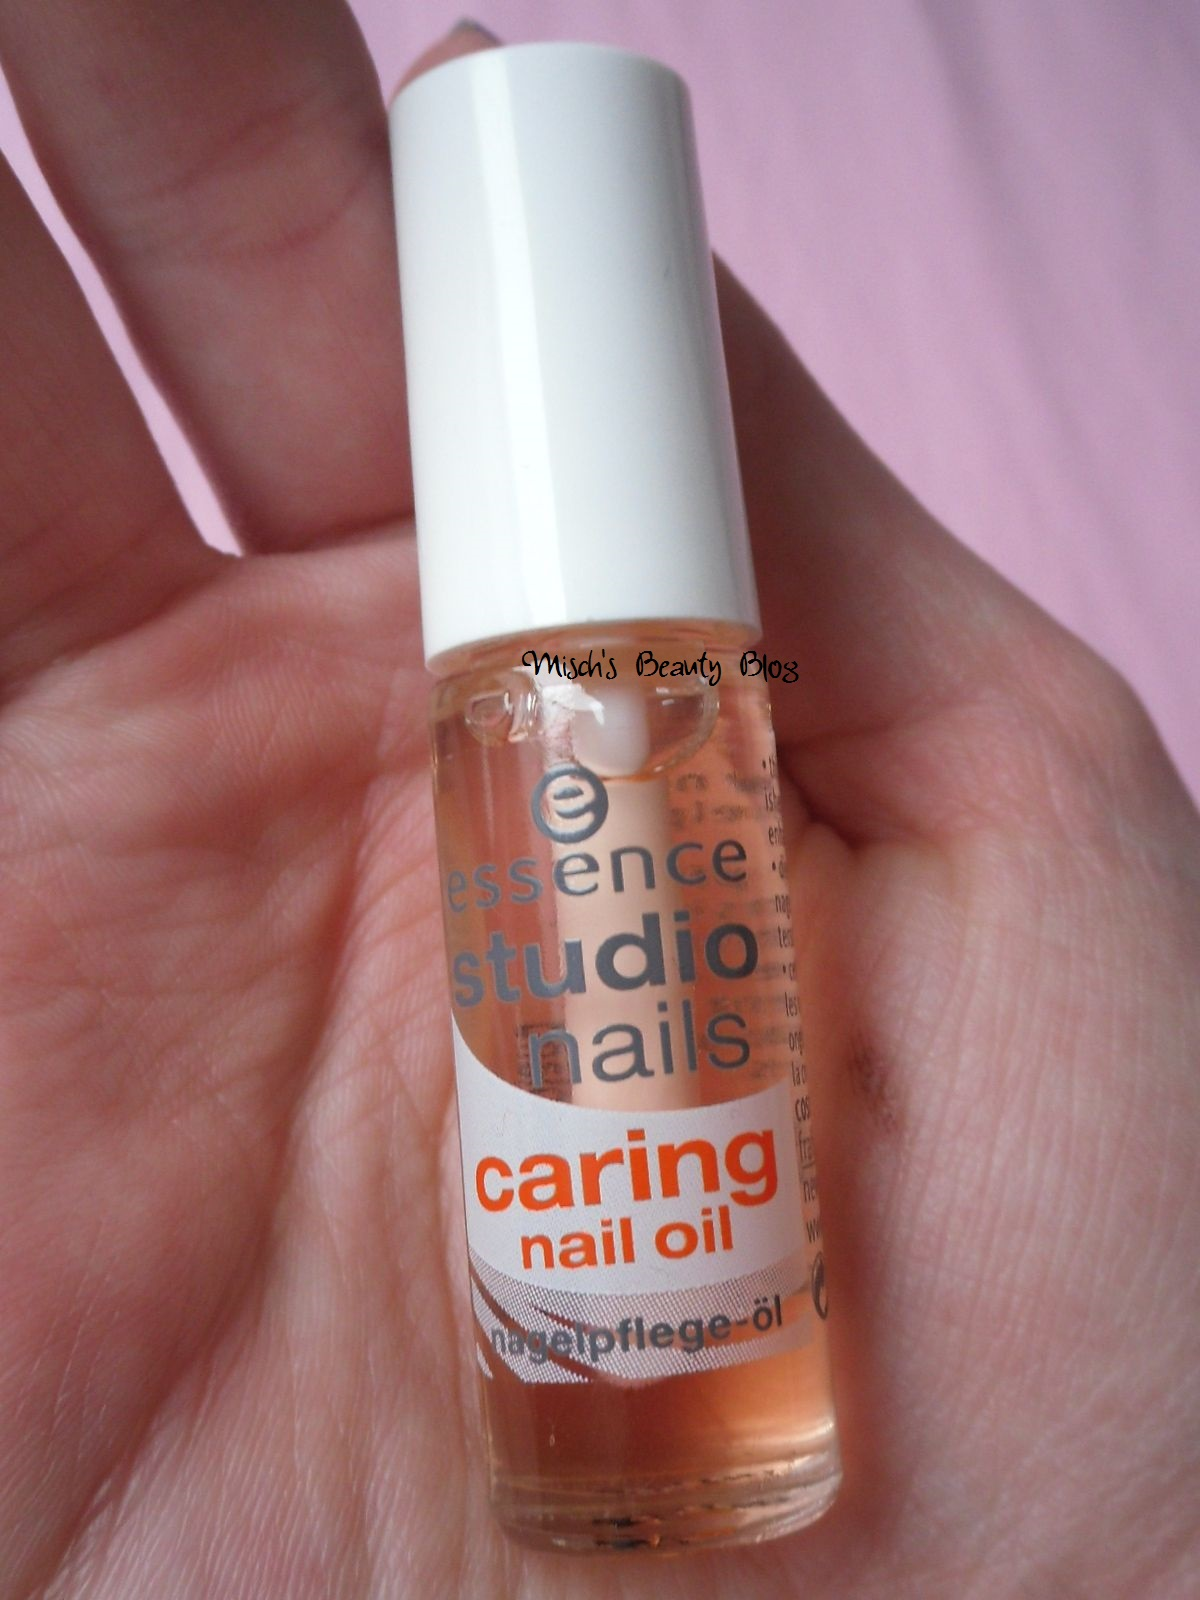 Misch's Beauty Blog: Review: Essence Studio Nails Caring ...